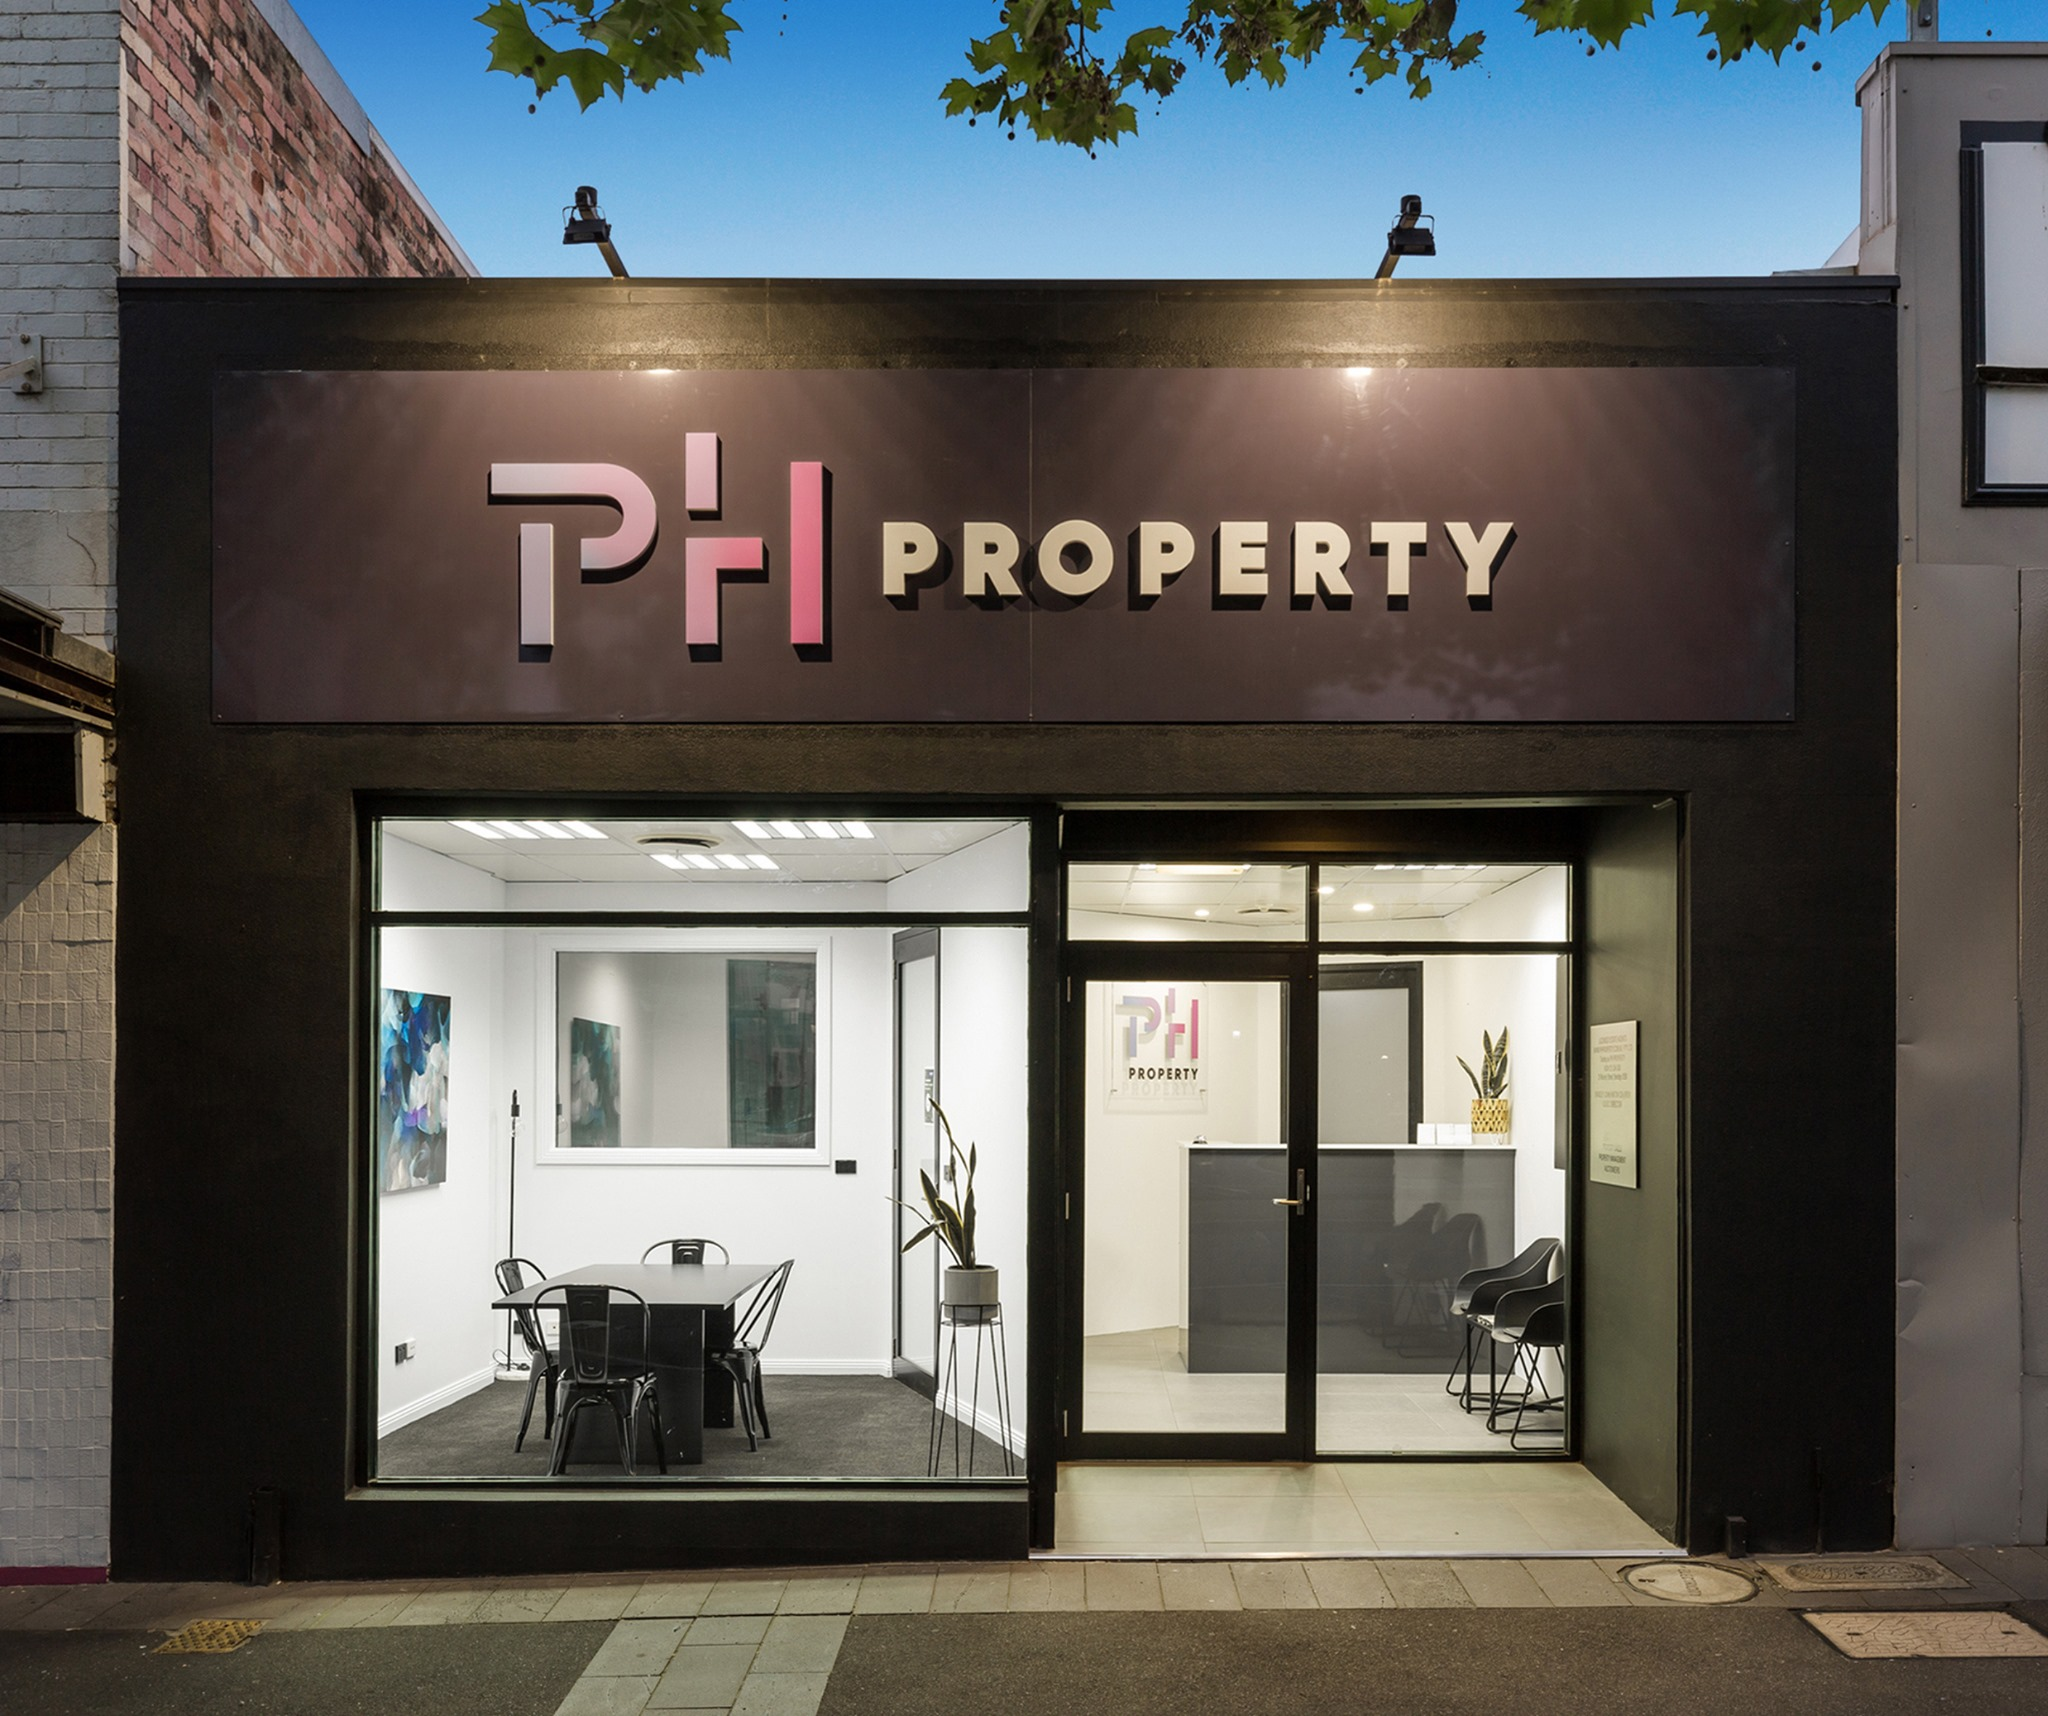 PH property signage